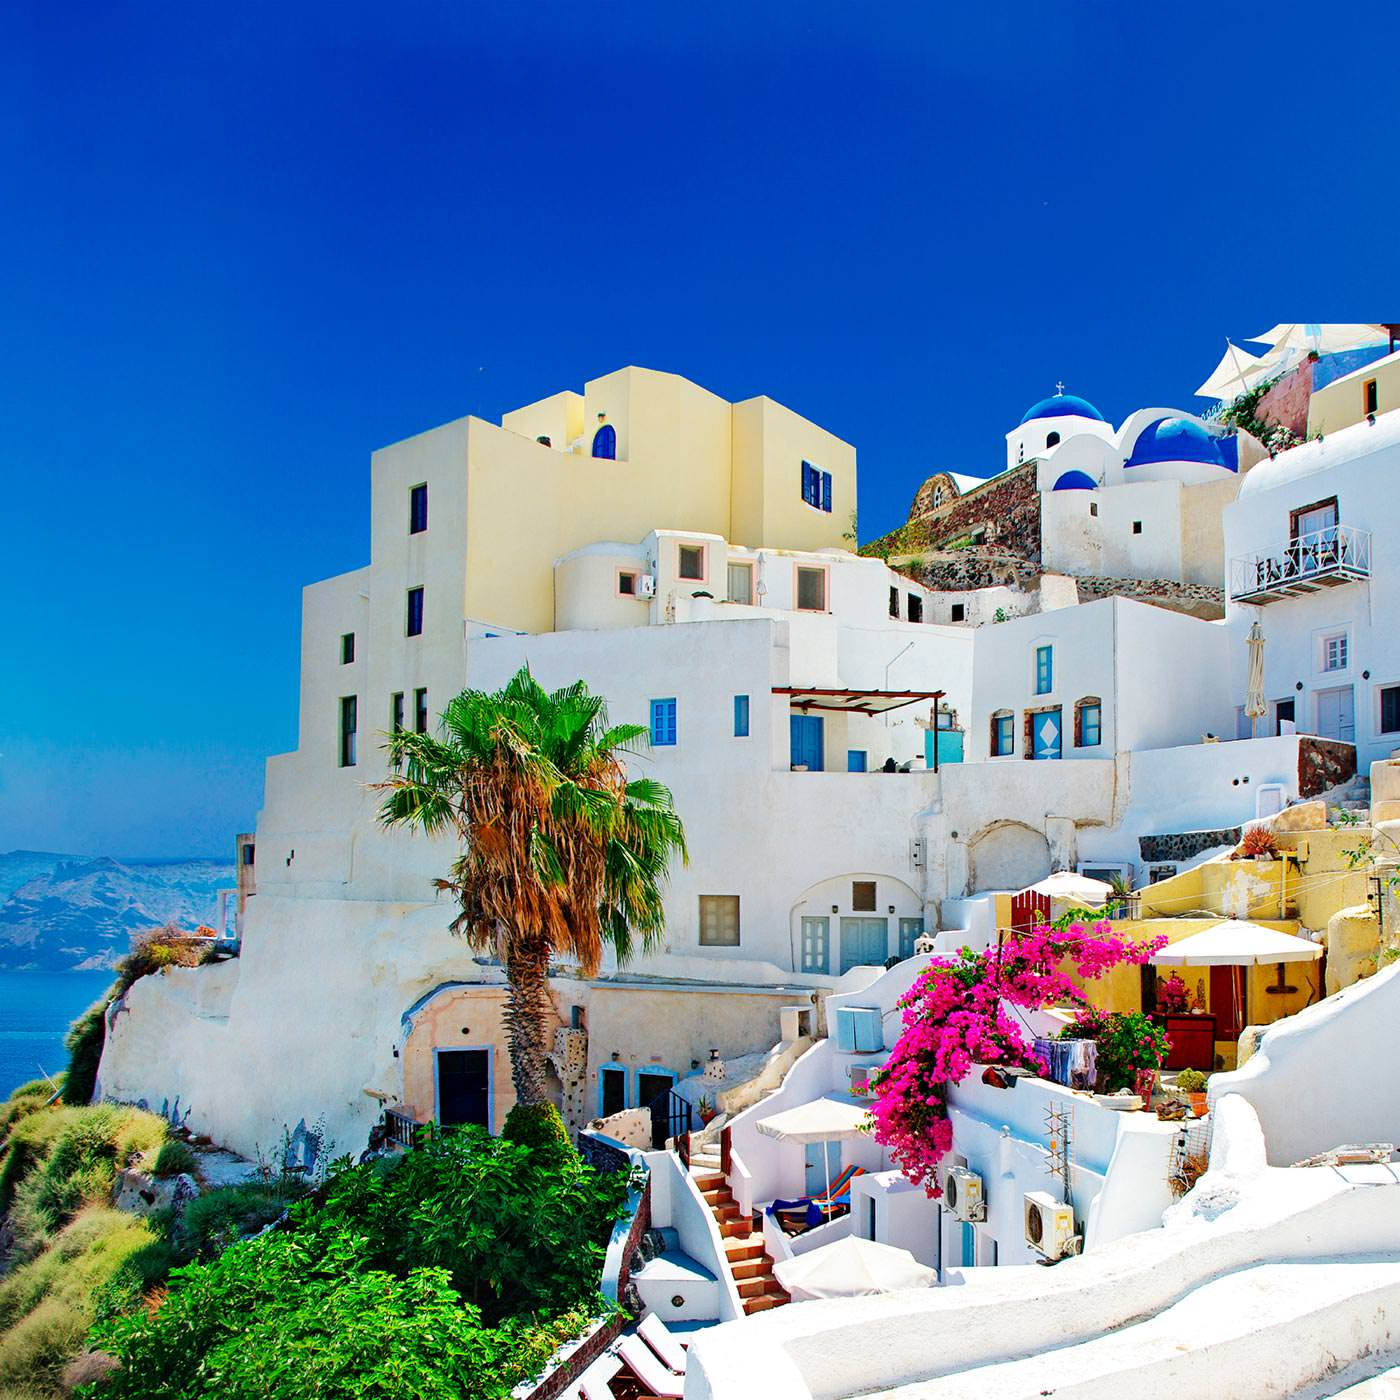 a look at the annual santorini jazz festival in santorini Santorini soccer fest – soccer news update around the world just another wordpress site perisic penyelamat inter di menit.